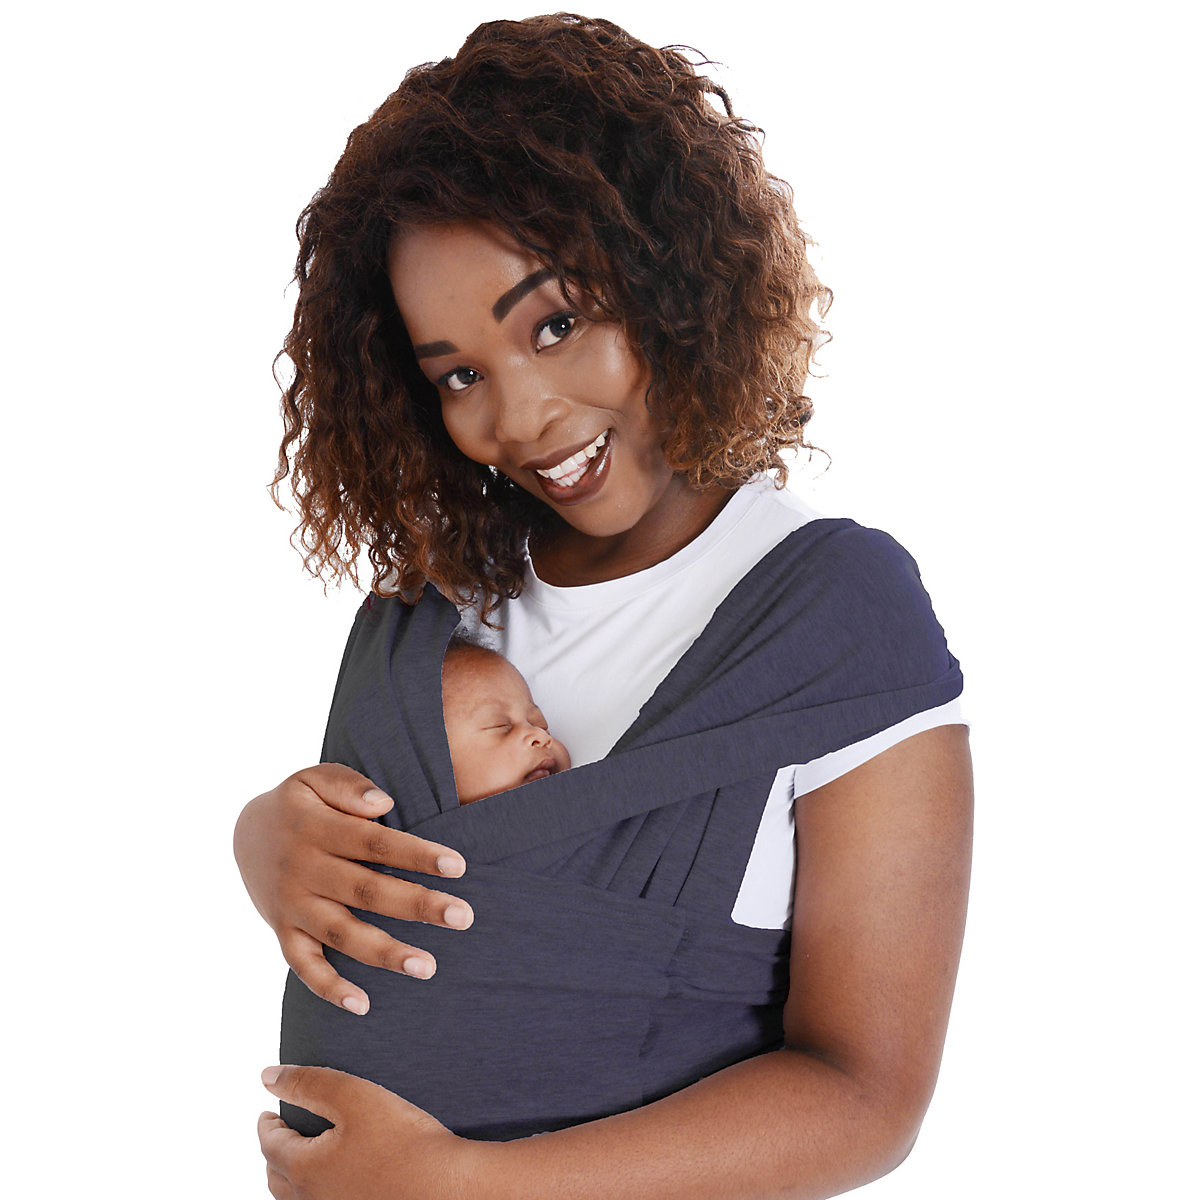 Dreamgenii SnuggleRoo baby carrier - charcoal grey *exclusive to mothercare*